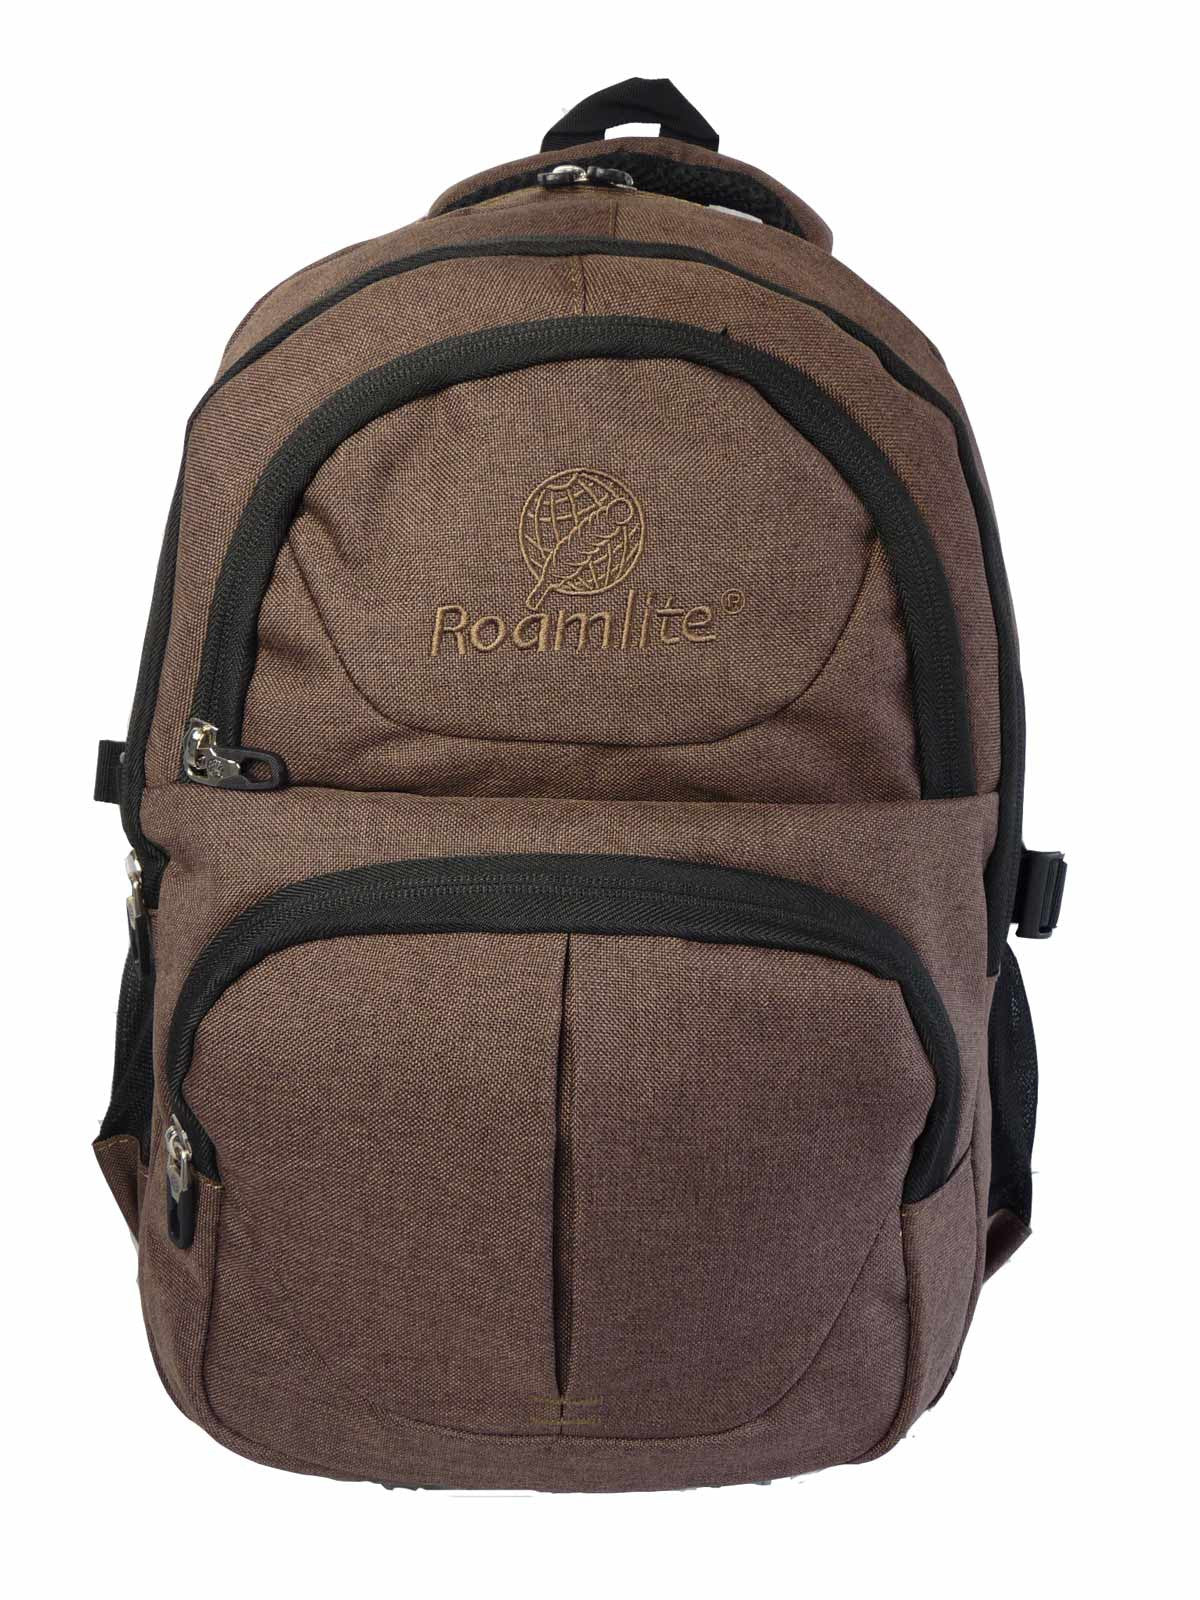 Laptop Macbook Backpack Rucksack Bag RL43B Front View